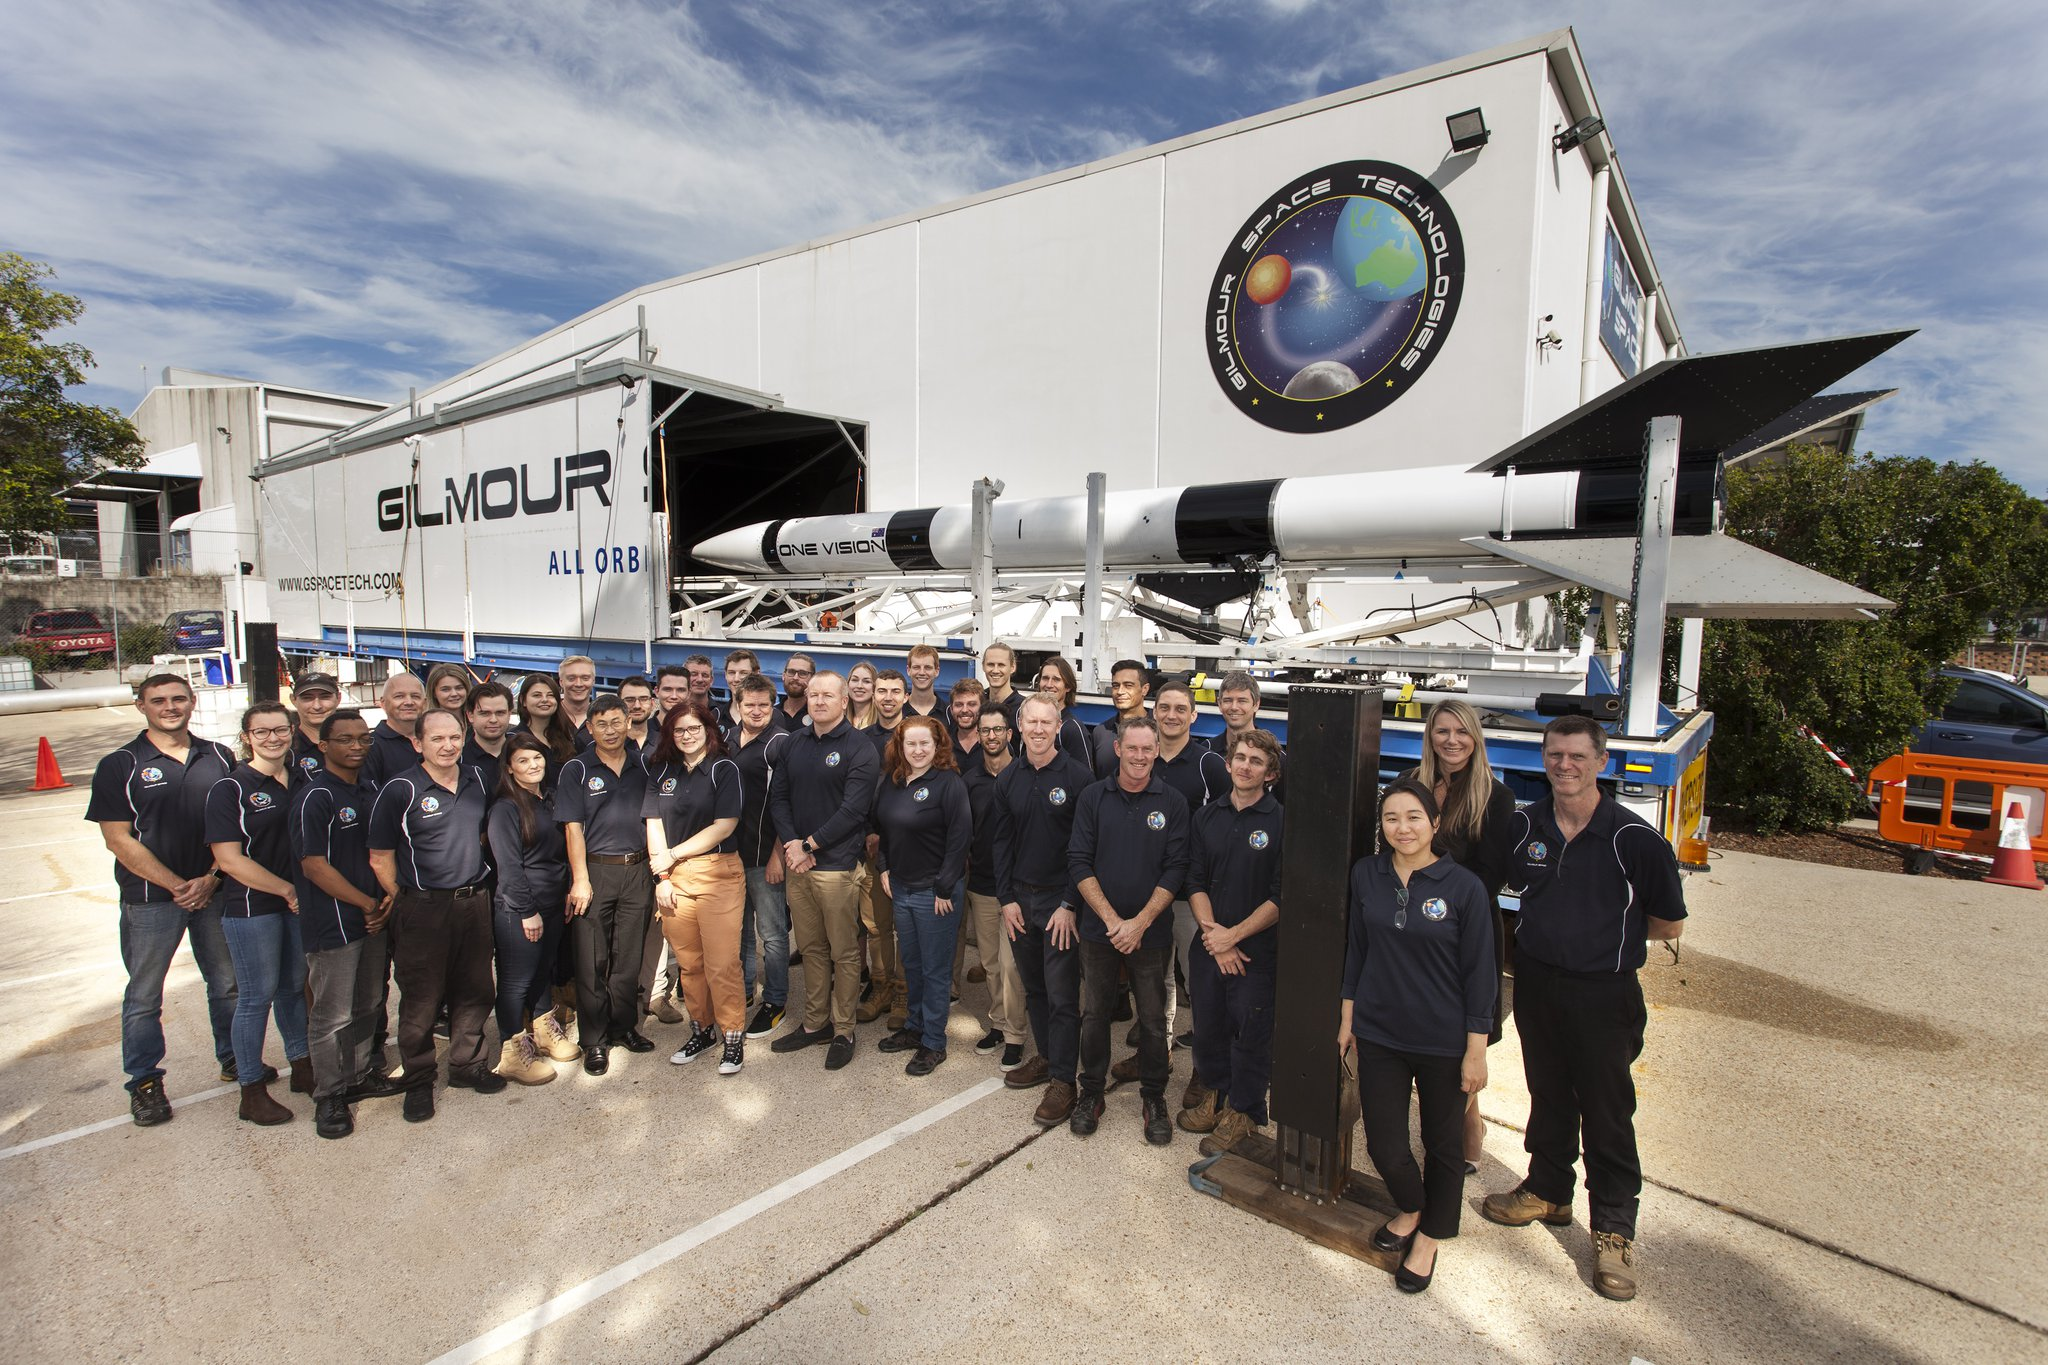 A large group of Gilmour staff members standing in front of a rocket, which is in front of a Gilmour Space building.